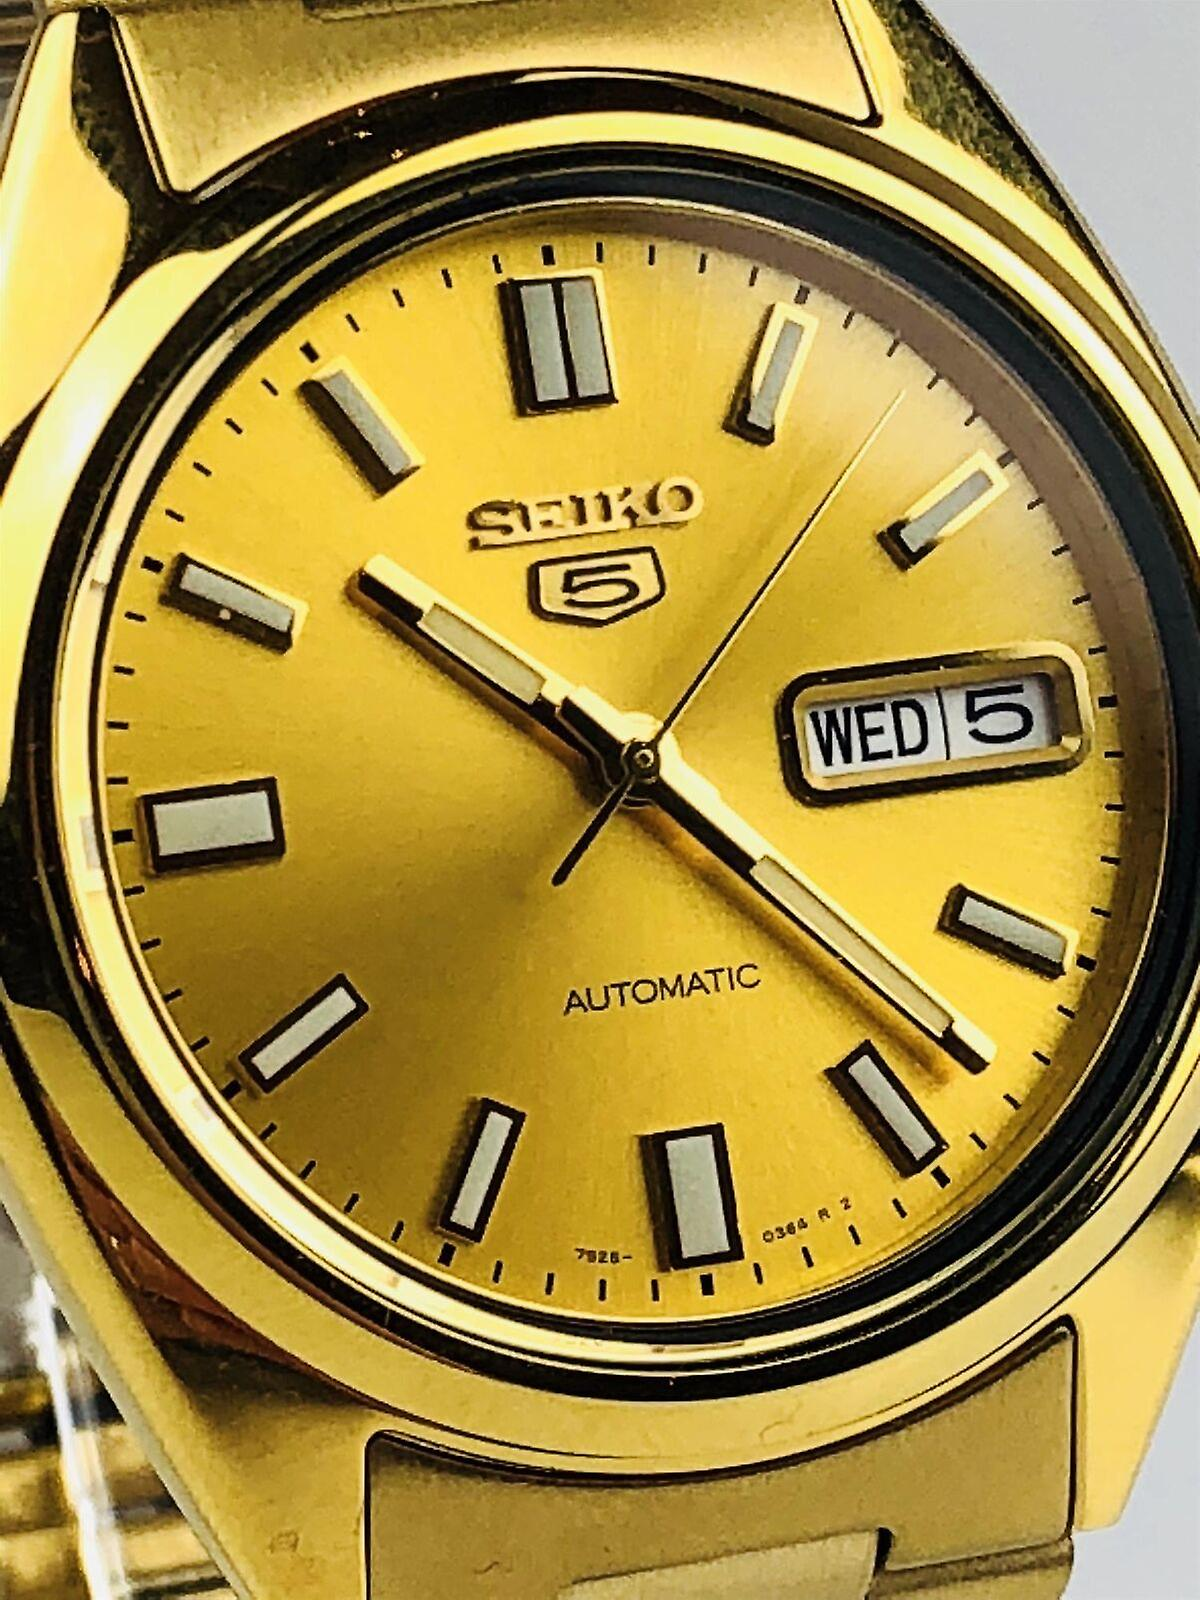 Seiko 5 Automatic Gold PVD Stainless Steel Men's Watch SNXS80K1 RRP £199